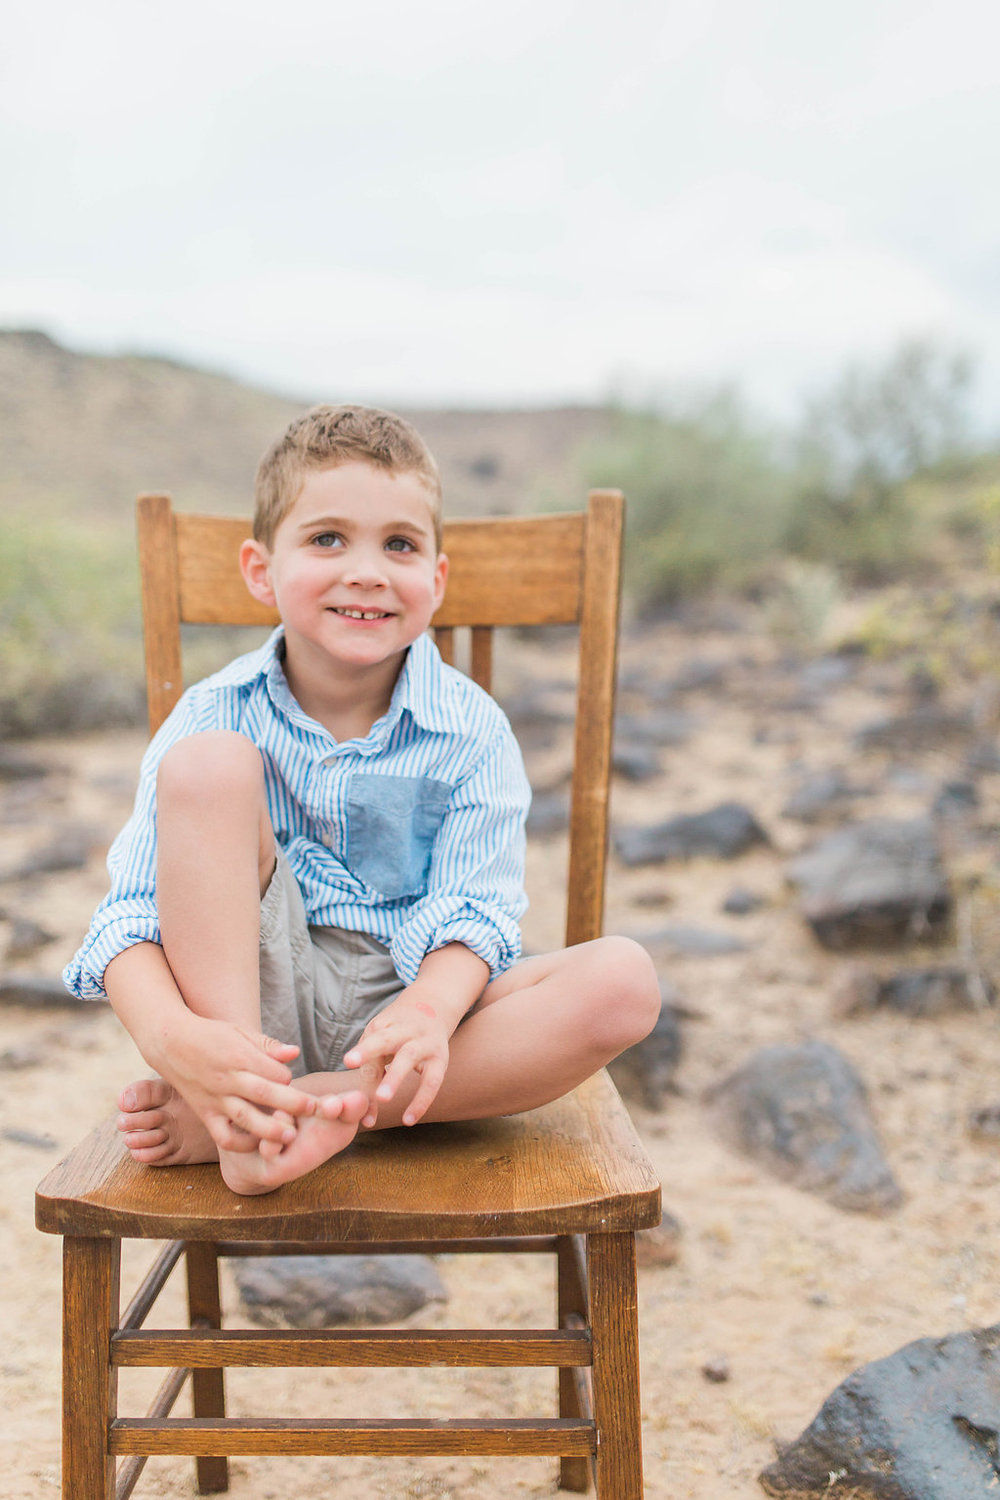 Desert Family Photo Shoot in Arizona | Emma Rose Company | Portrait Photographer | Seattle Wedding Photographer | Adorable Family Photo Shoot Outside | Family Posing | Cute Kids | Family Photo Shoot | Husband and Wife Pictures | What to Wear for pictures | Little Boy Sitting on Wooden Chair